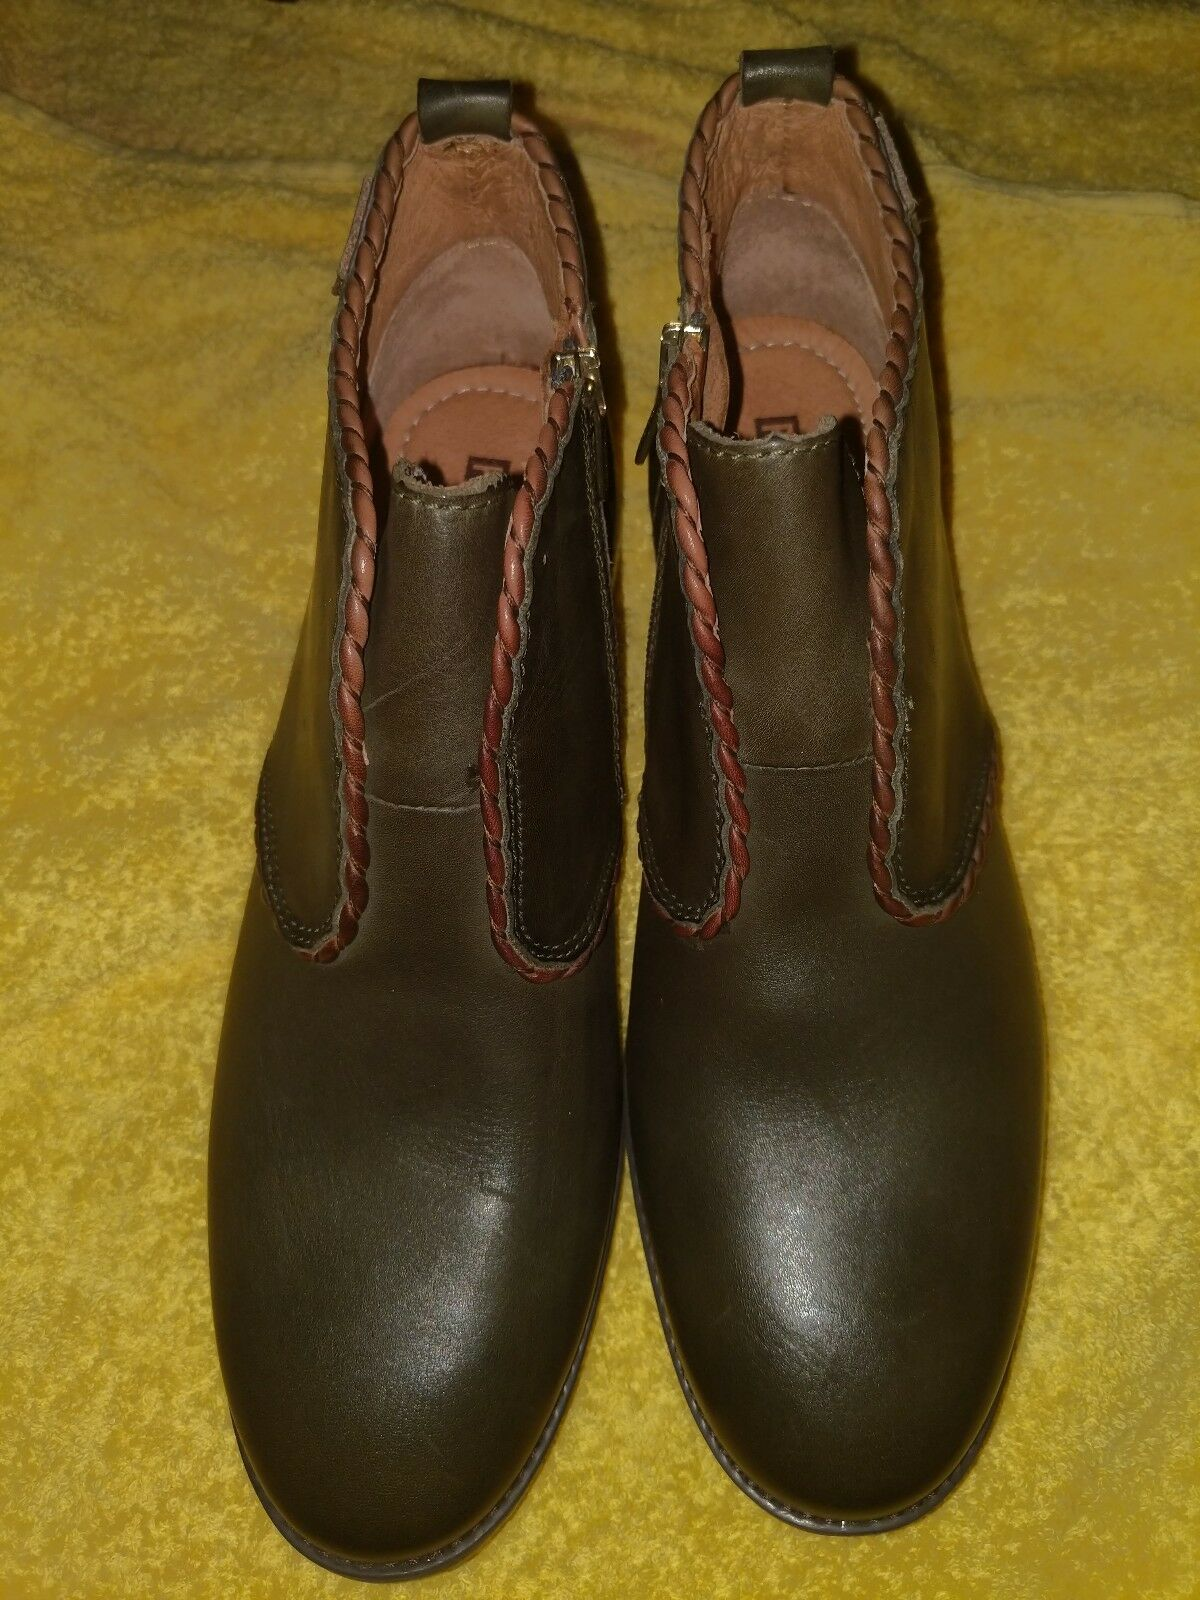 Pikolinos Andorra Ankle Boots-Women's Size-US 10.5